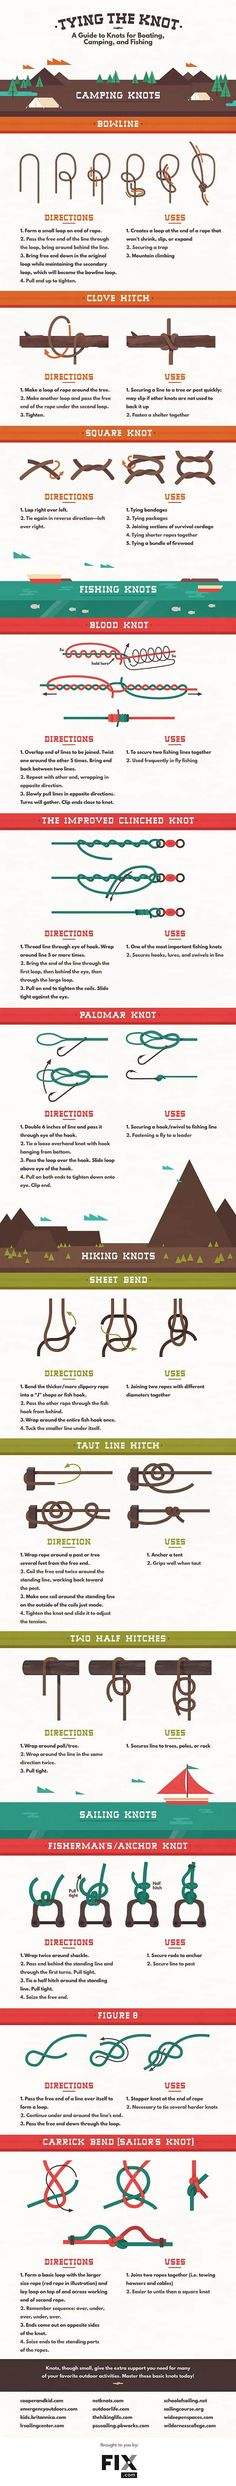 How To Tie Knots | Ways To Tie Different Types of Knots